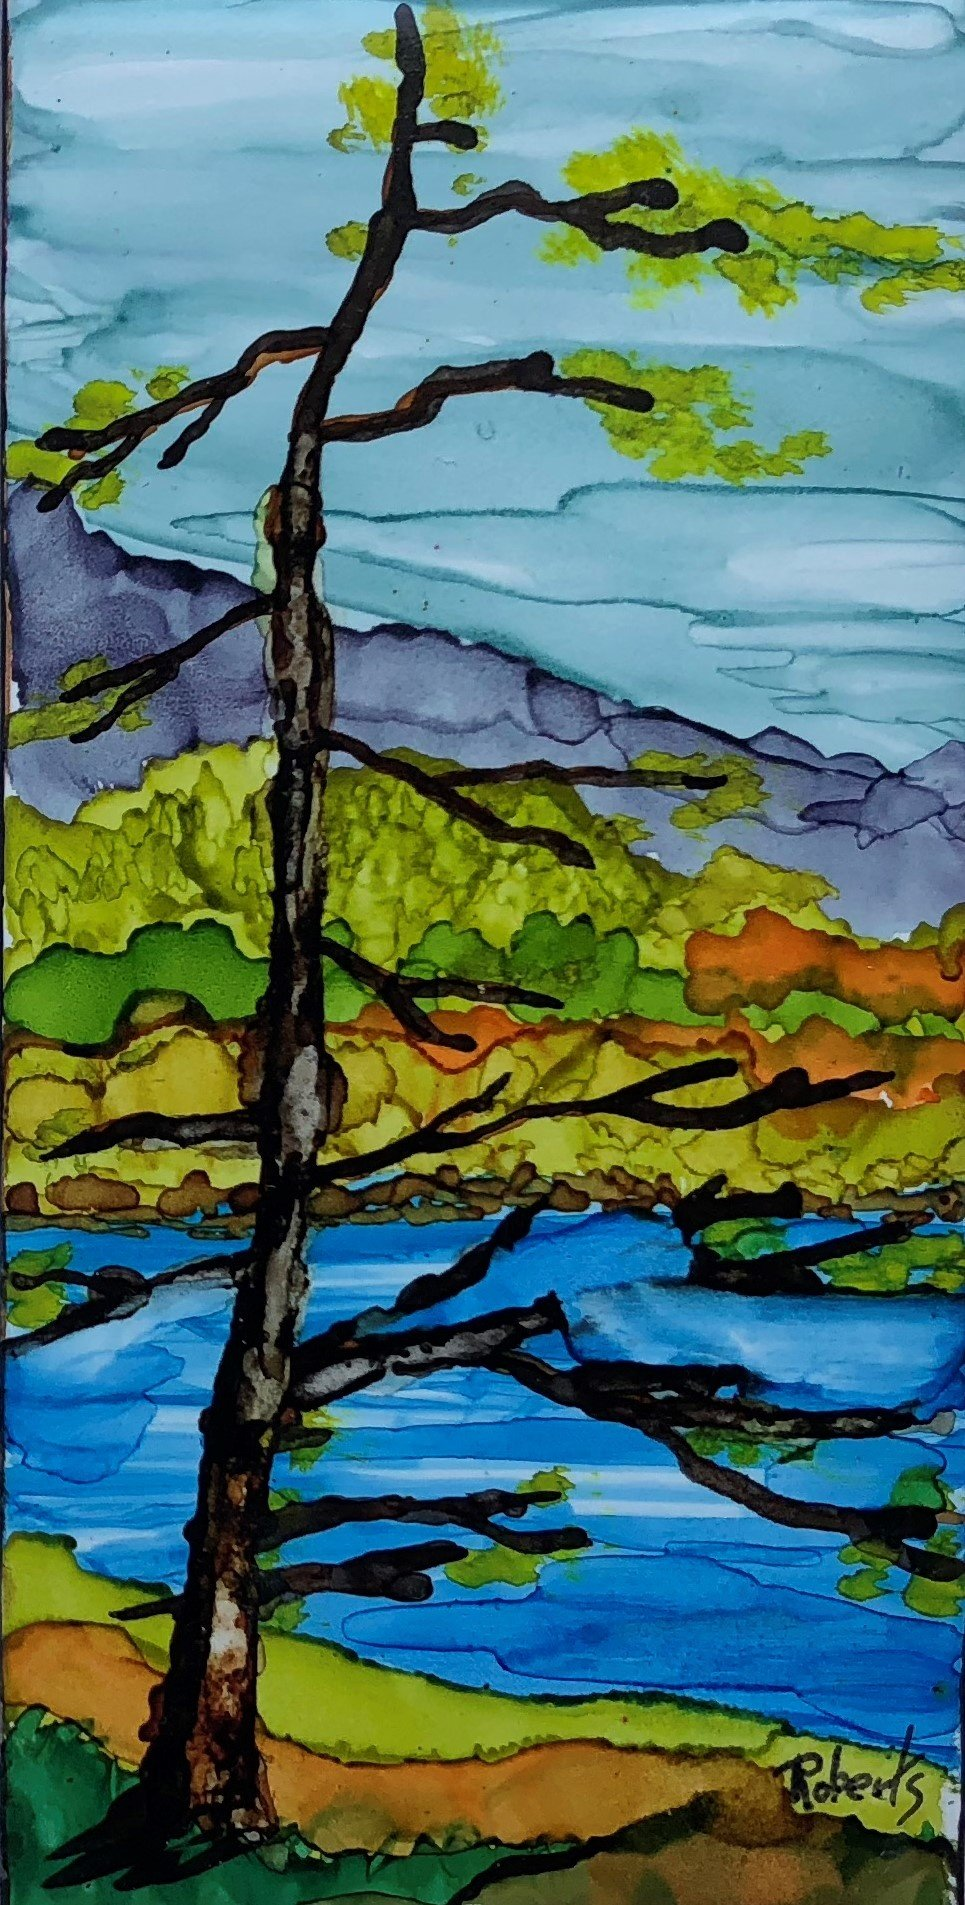 Blue River 3 x 6 tile $140. framed